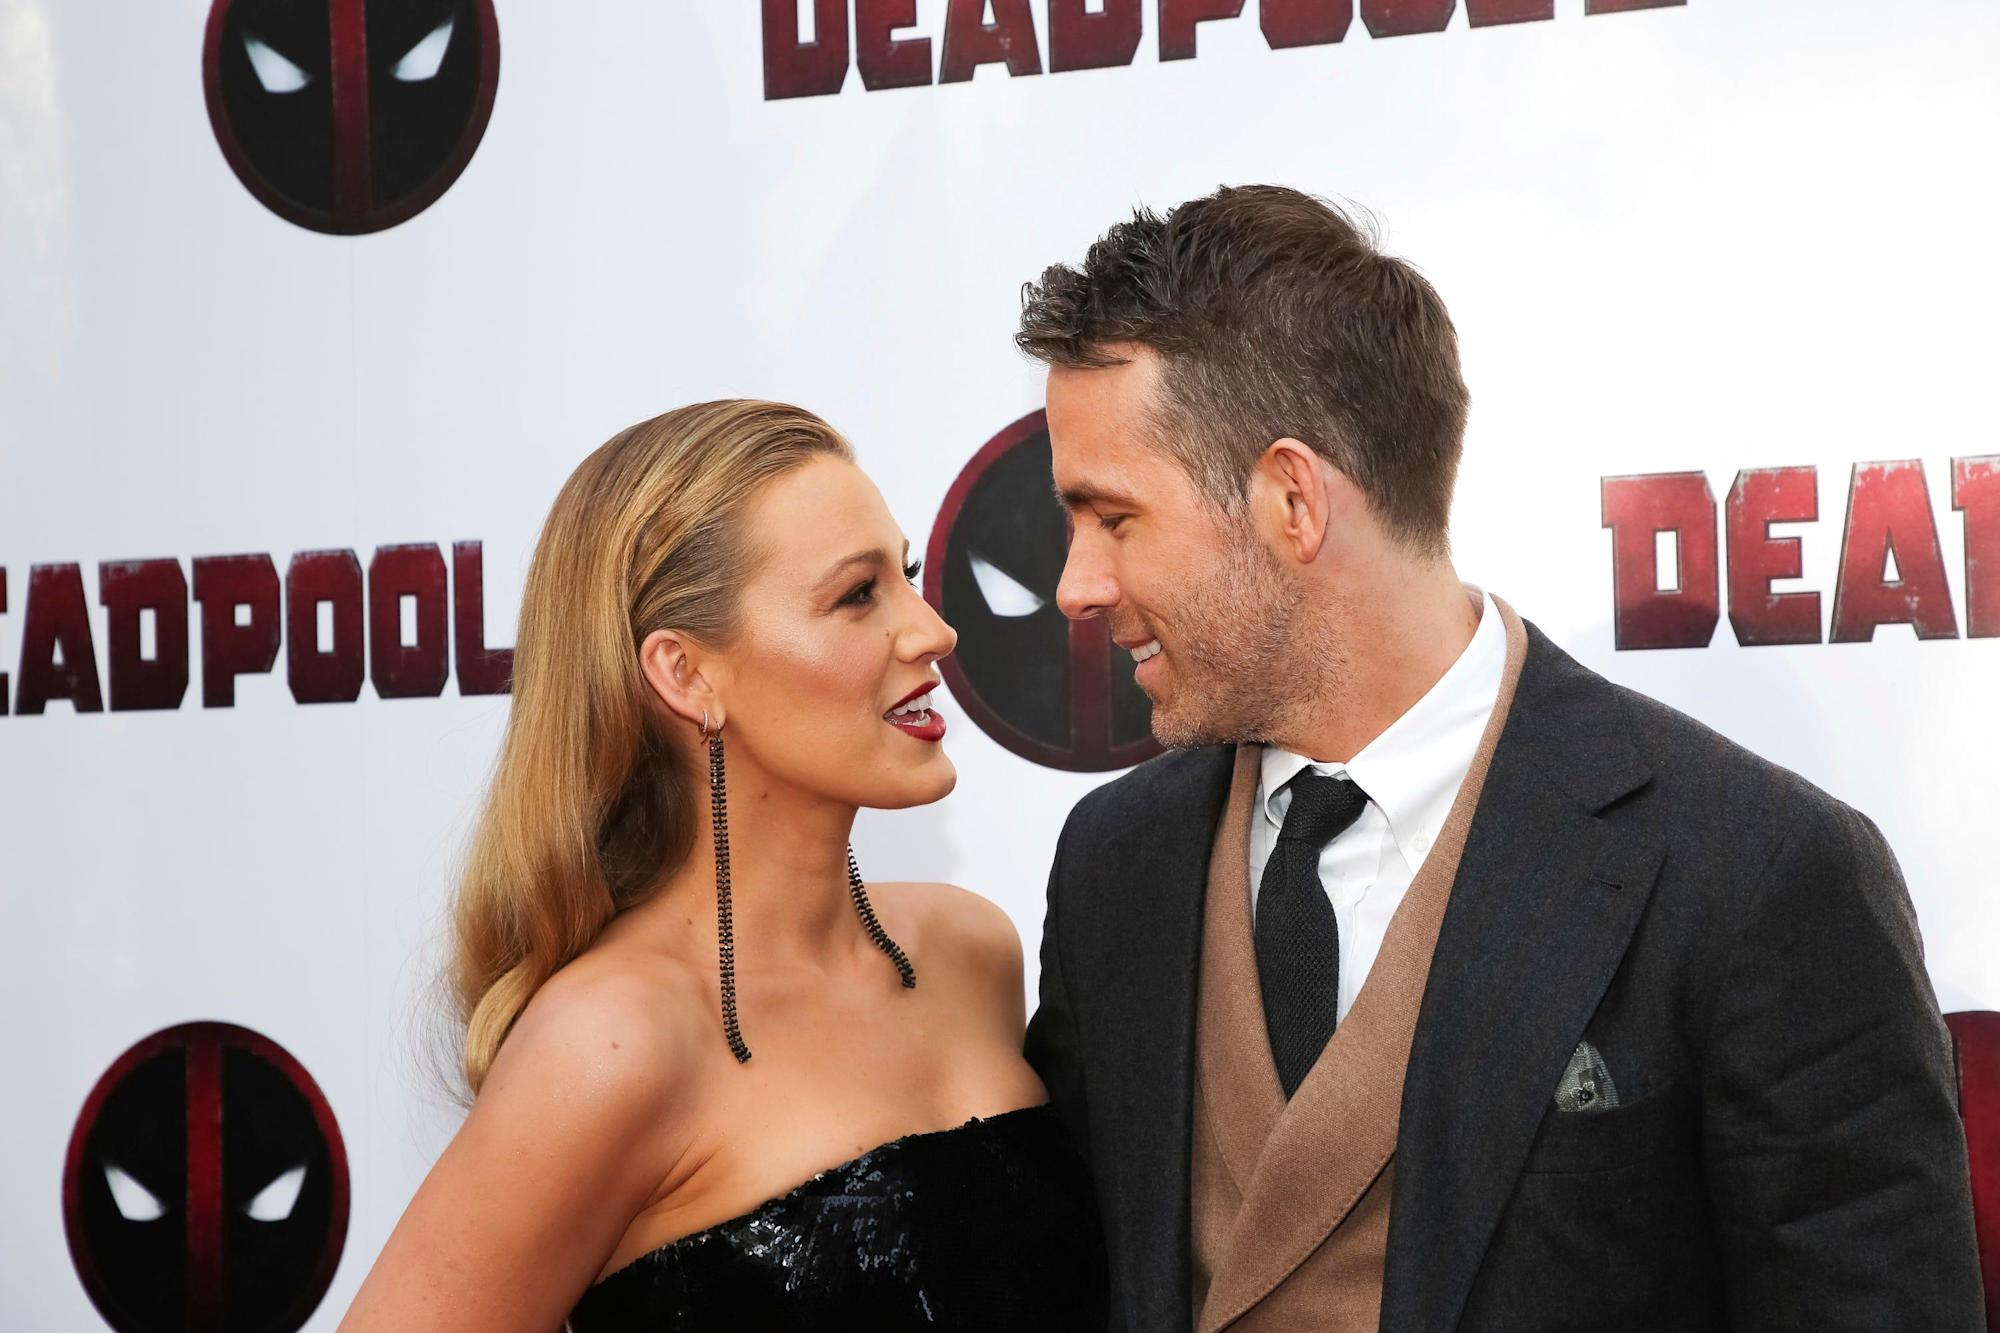 'Act of kindness': Blake Lively, Ryan Reynolds give 0,000 to help at-risk youth in Canada